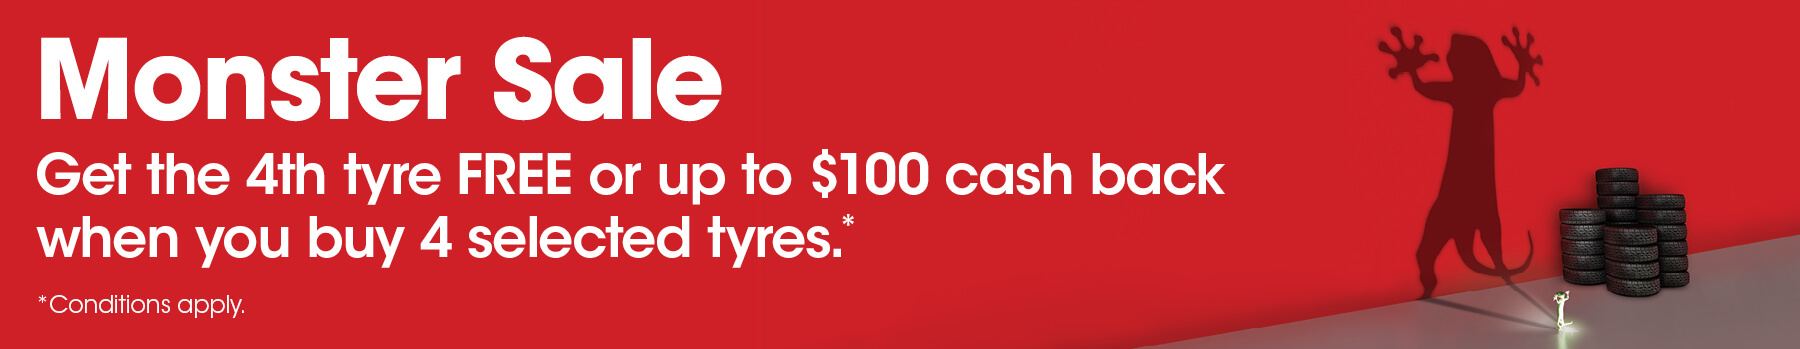 Get the 4th tyre free or up to $100 cash back when you buy 4 selected tyres